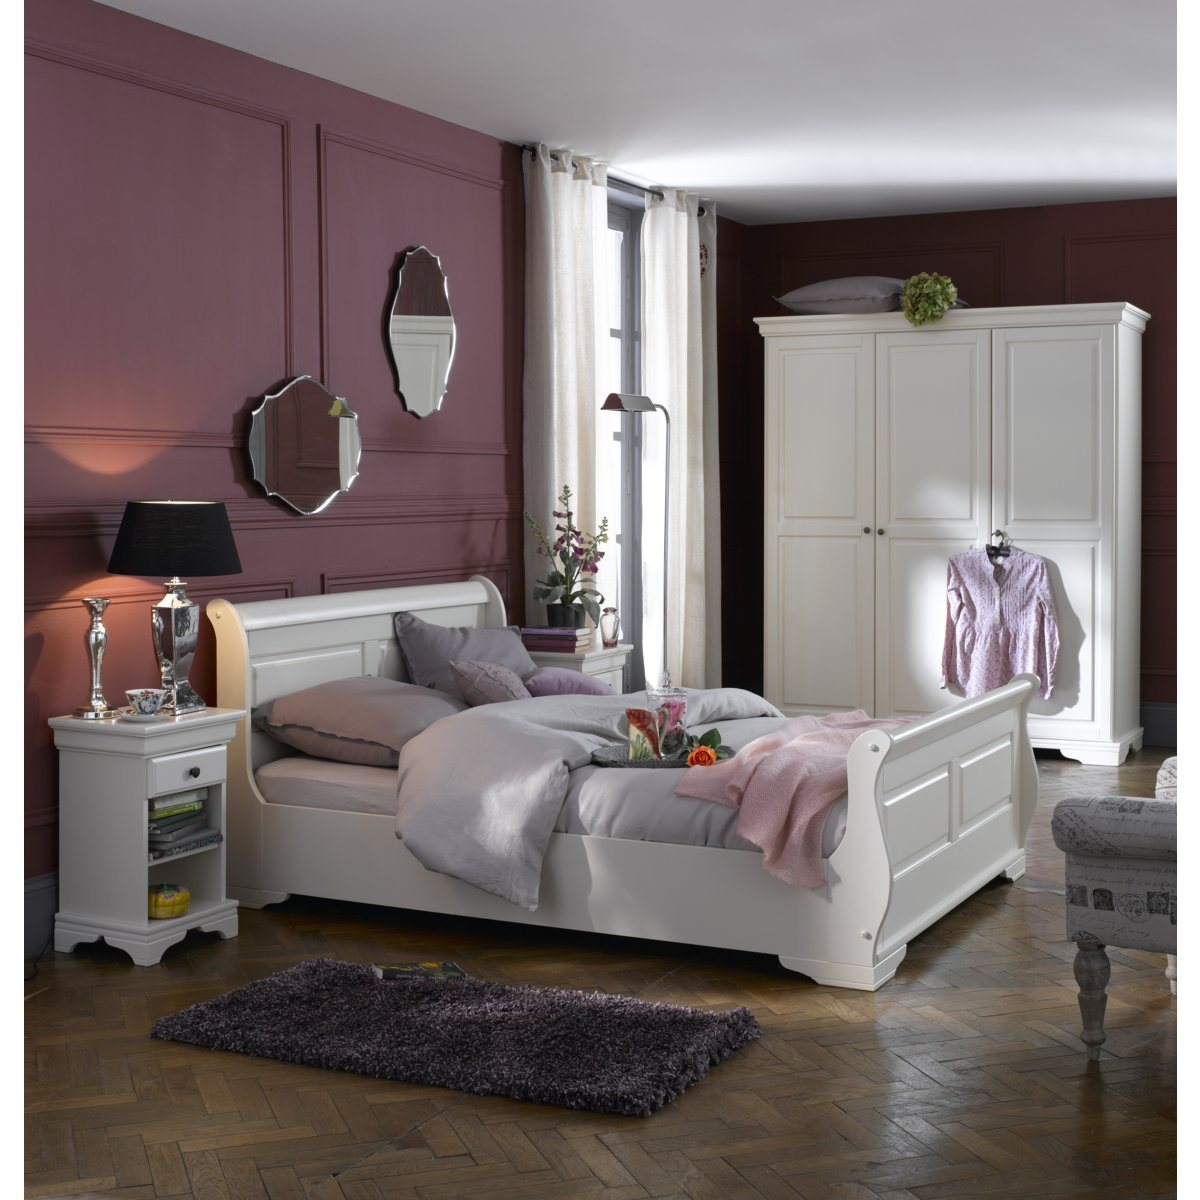 cuisine beige quelle couleur pour les murs. Black Bedroom Furniture Sets. Home Design Ideas